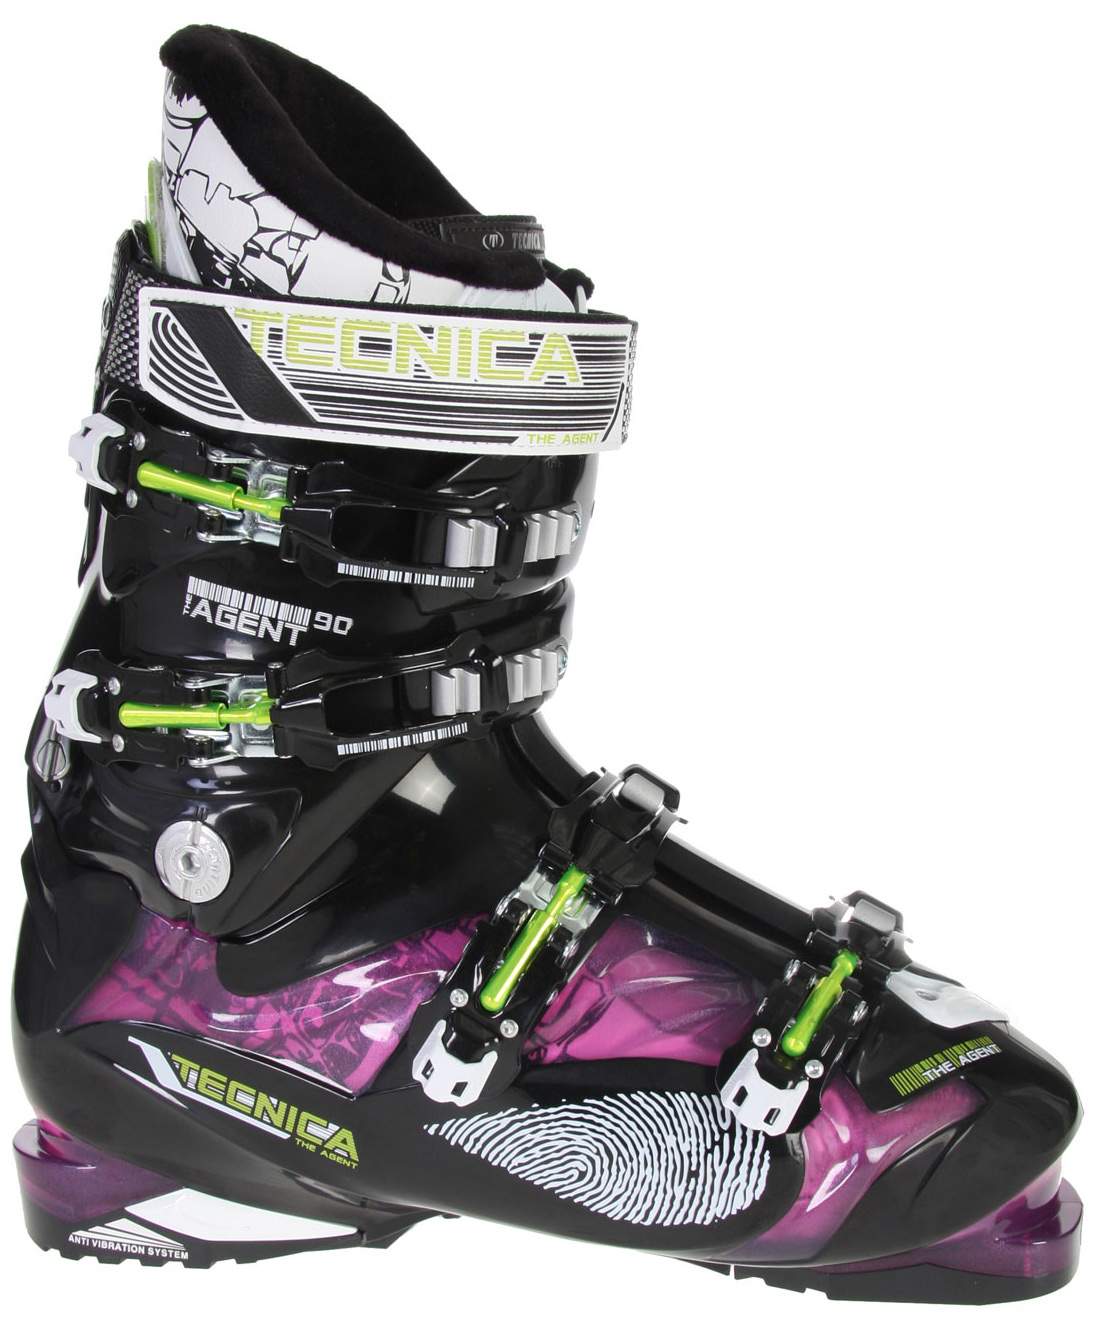 Ski If you are looking for a great ski boot that puts comfort and performance at the top of its priority list you might consider the Tecnica Agent 90 ski boots. These boots are not only equipped with many features for comfort, they are also slick and stylish. Built with a 3-density shell to create 3 zones of hardness to maximize fit, a neoprene liner in the toe box to keep your toes warm and give you a little extra room as the day goes on and a fur fleece lining you can be sure, that even after a long day on the slopes your feet will be warm and comfortable. The buckles are made from a carbon steel so you can be sure they will last and the power strap at the top of the boot allows you a custom fit. Overall, these boots and all their features are quite impressive.Key Features of the Tecnica Agent 90 Ski Boots: 3 Density Technology Cuff Alignment Delta Force System AVS With Grip Sole Velcro Rear Spoiler: adjustable and removable 35mm Velcro Powerstrap Embossed Carbon Steel Buckles Contact: Shock Absorbing Tongue, Shock Absorbing Rear Spoiler Triple Position Cuff Catches Fur Fleece Lining Tongue Handle Pull Strap Neoprene Toe Box - $345.95